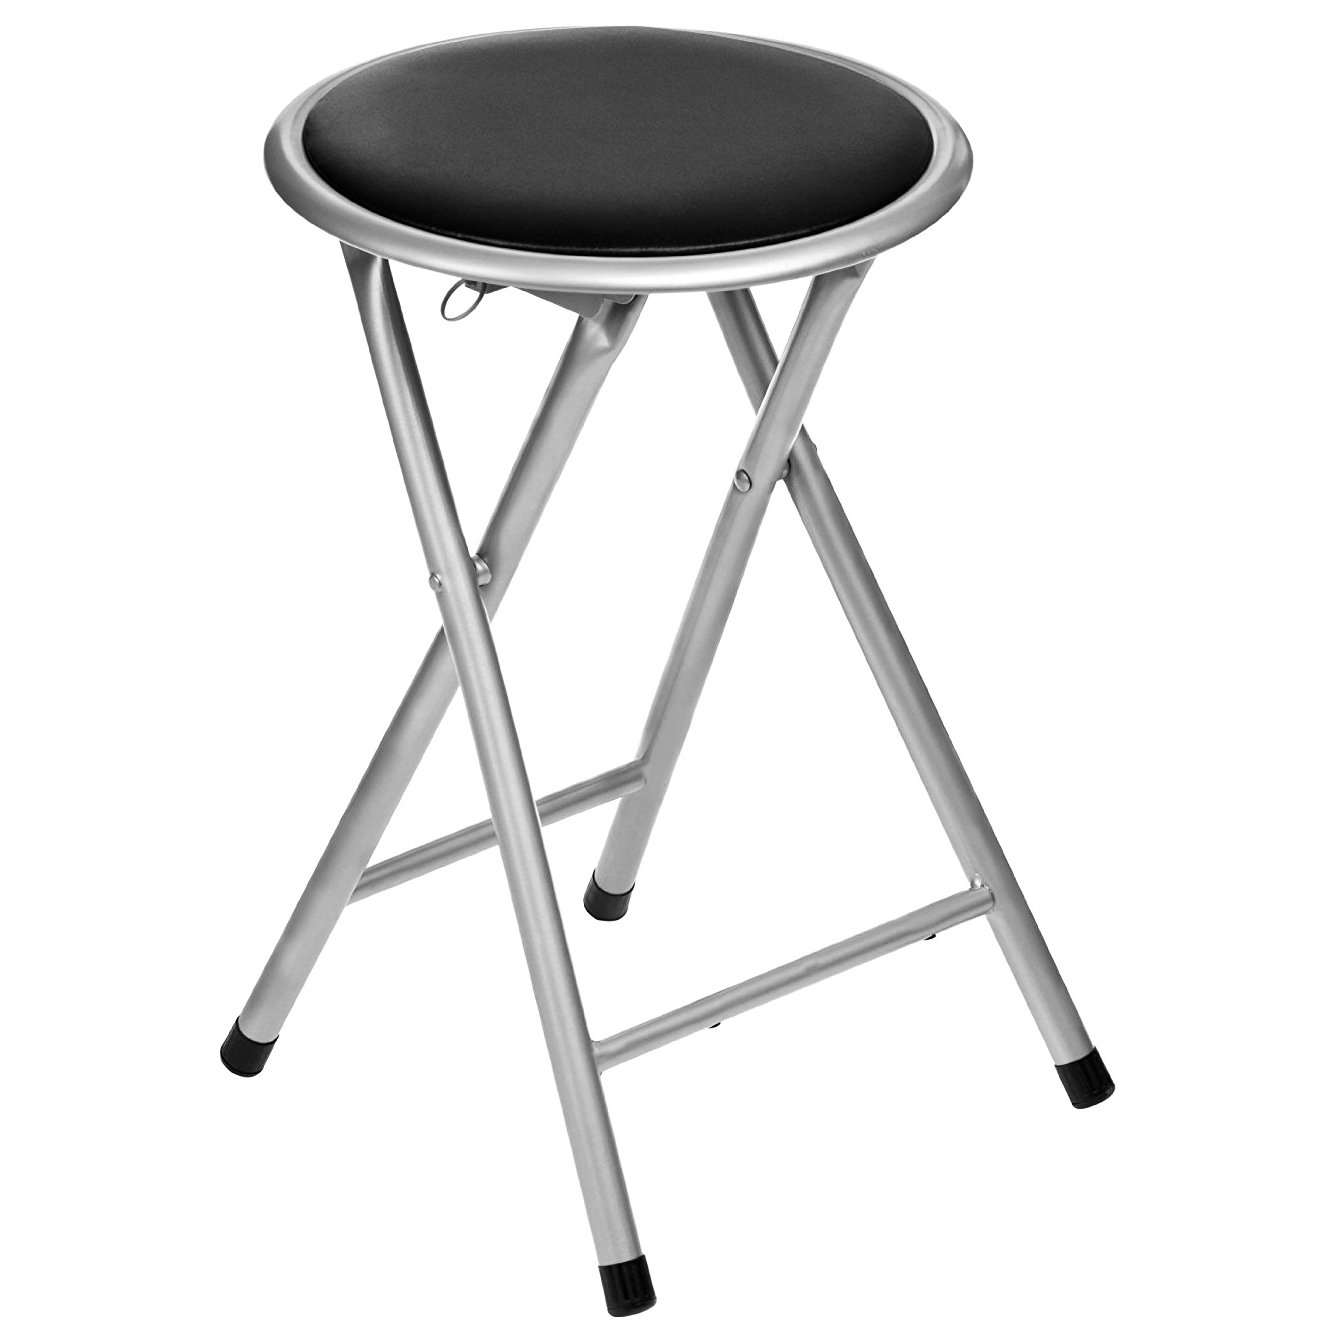 Folding Bar Stools ~ Black padded folding breakfast kitchen bar stool seat £